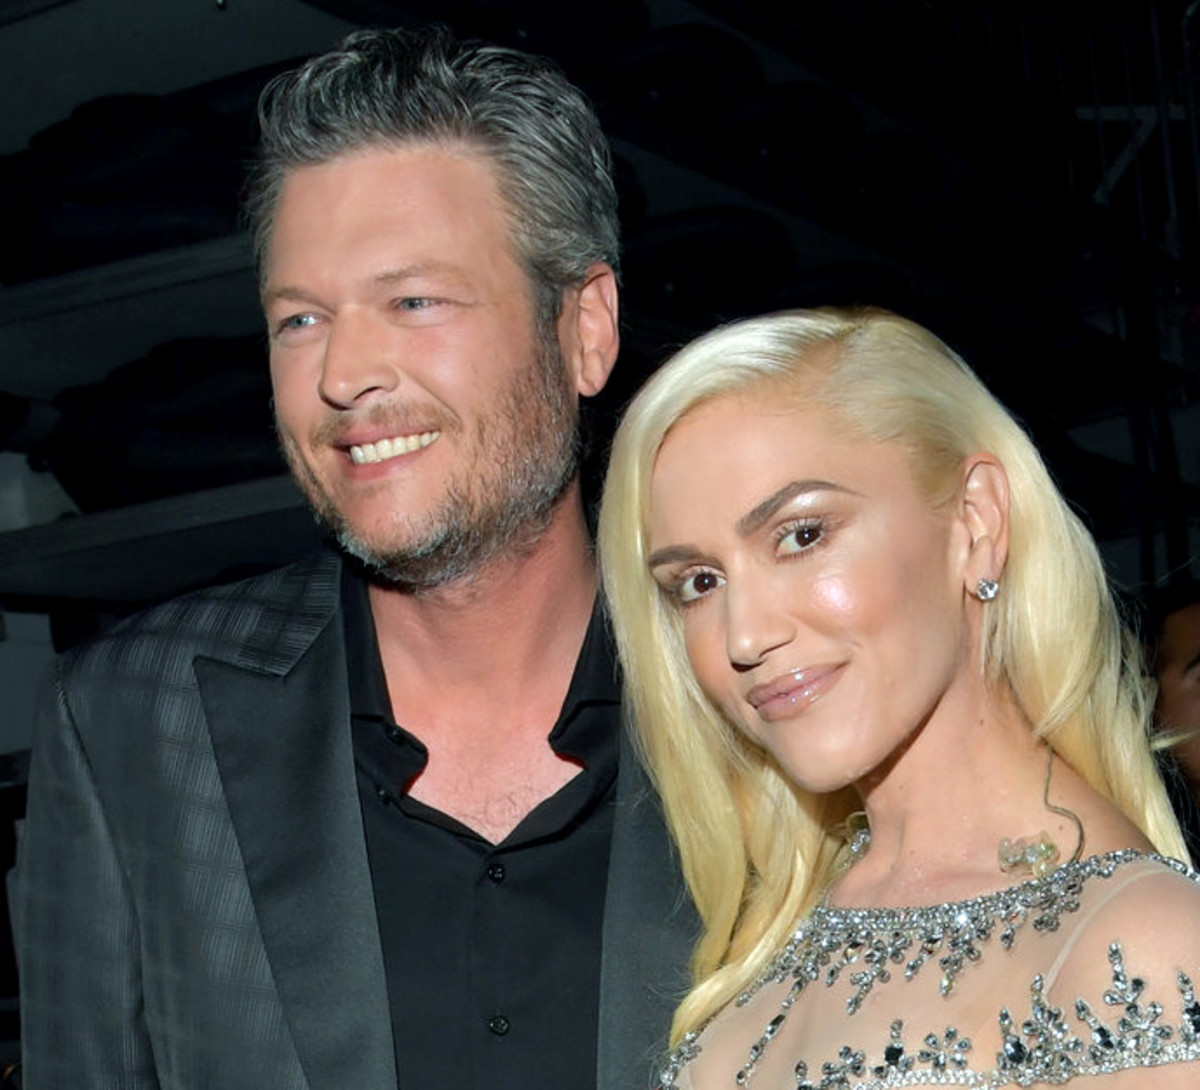 Gwen Stefani and beau Blake Shelton performed a duet from his new album, If I'm Honest.